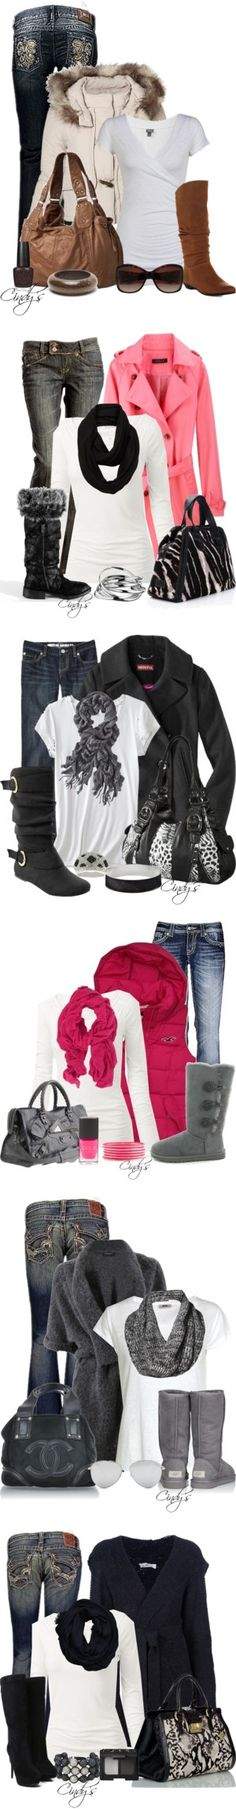 """I LOVE Jeans and Tee Outfits"" by cindycook10 on Polyvore"